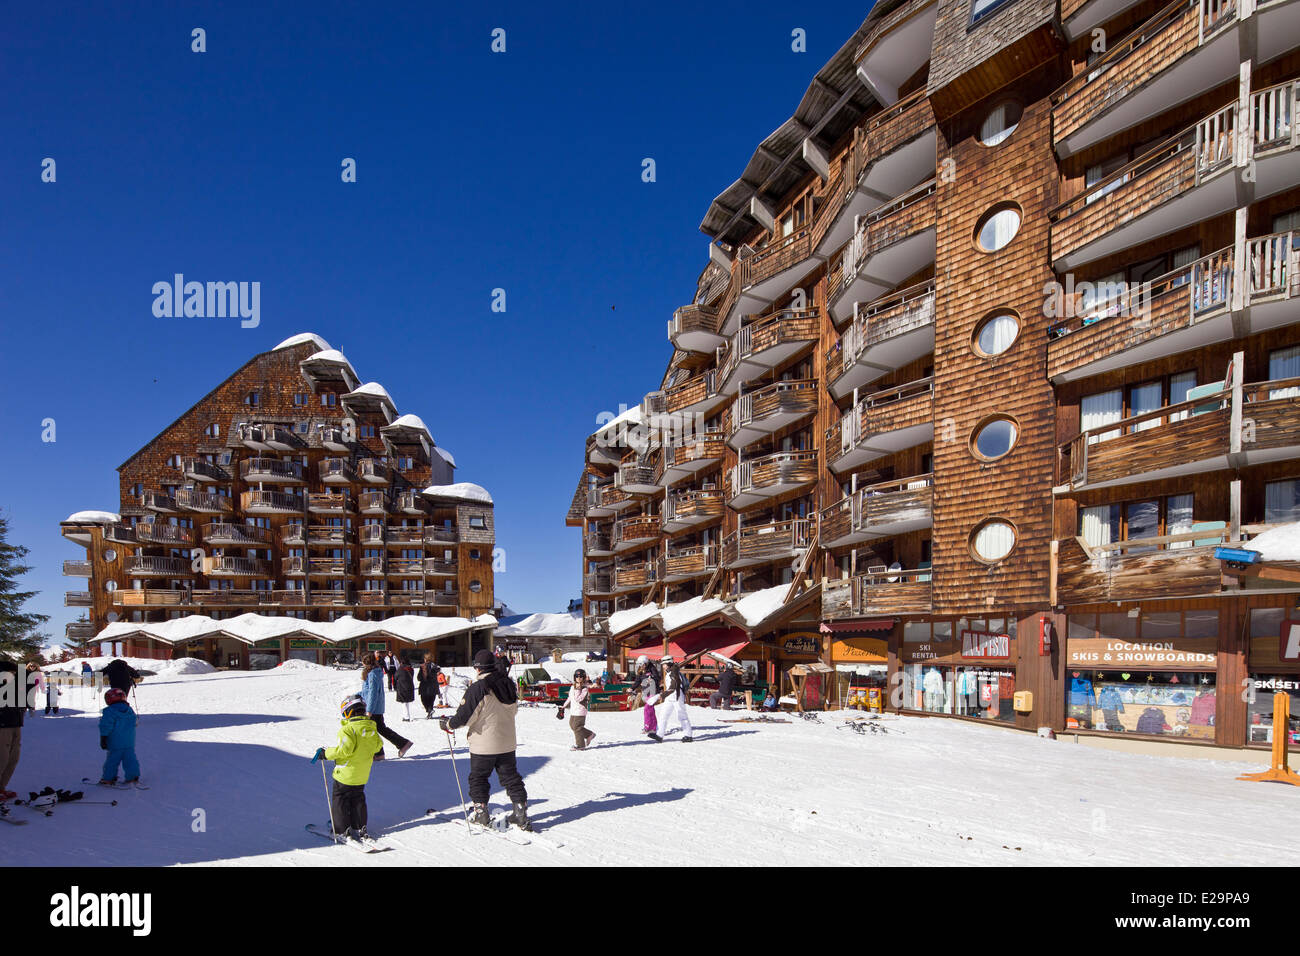 France, Haute Savoie, Avoriaz, forbidden to vehicles, sleigh allowing moves - Stock Image